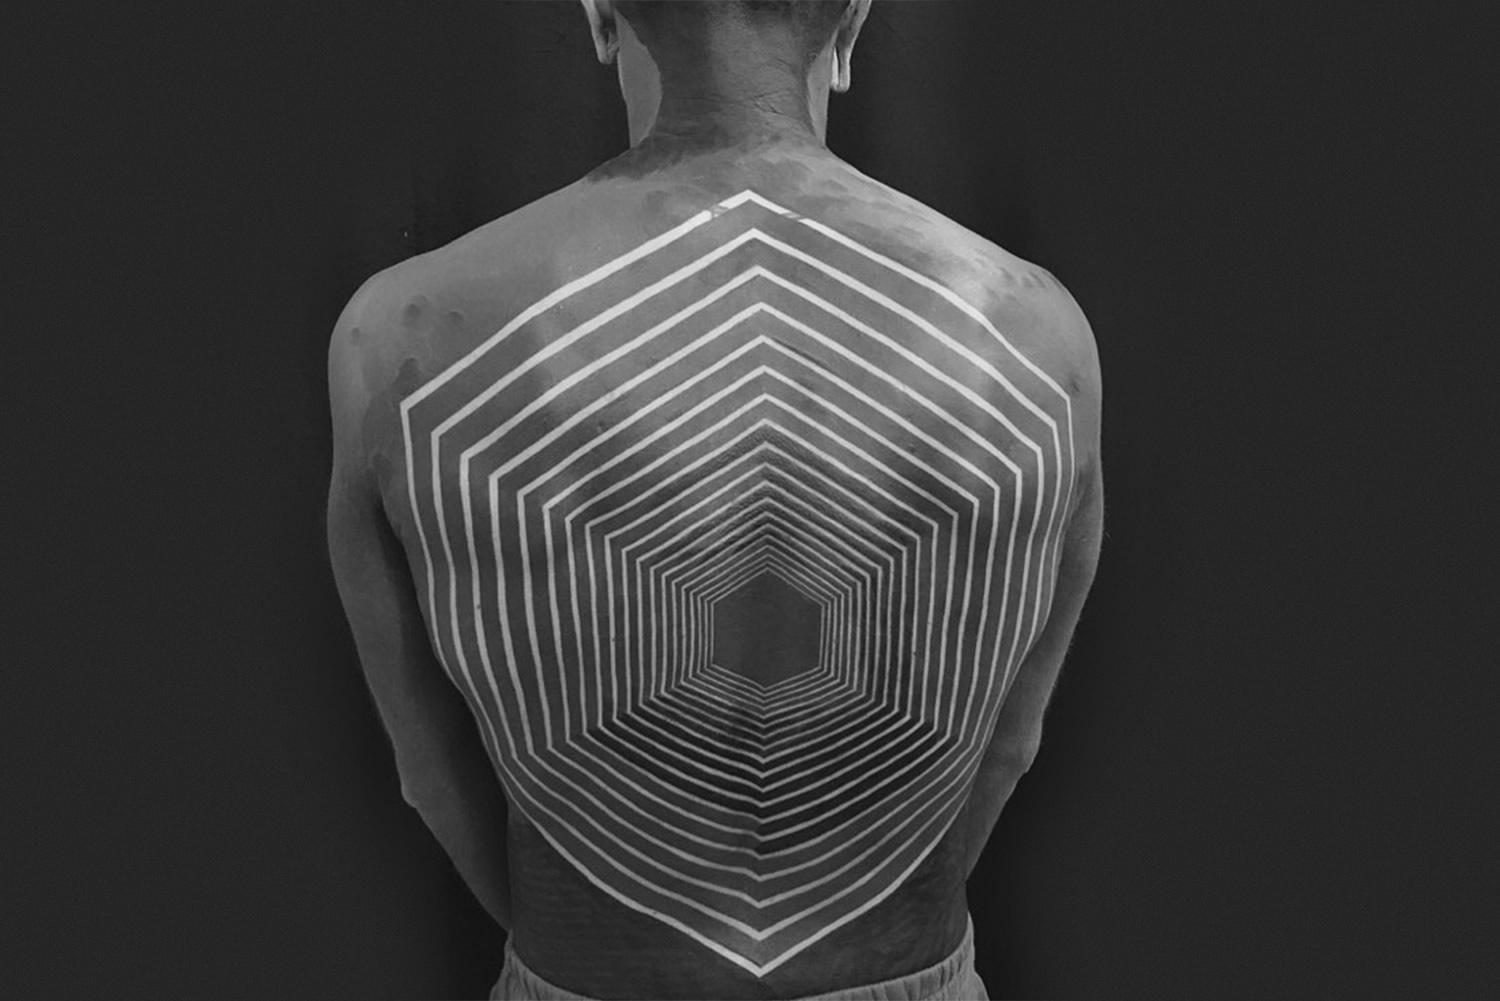 blackout, blackwork back piece by gerhard wiesbeck